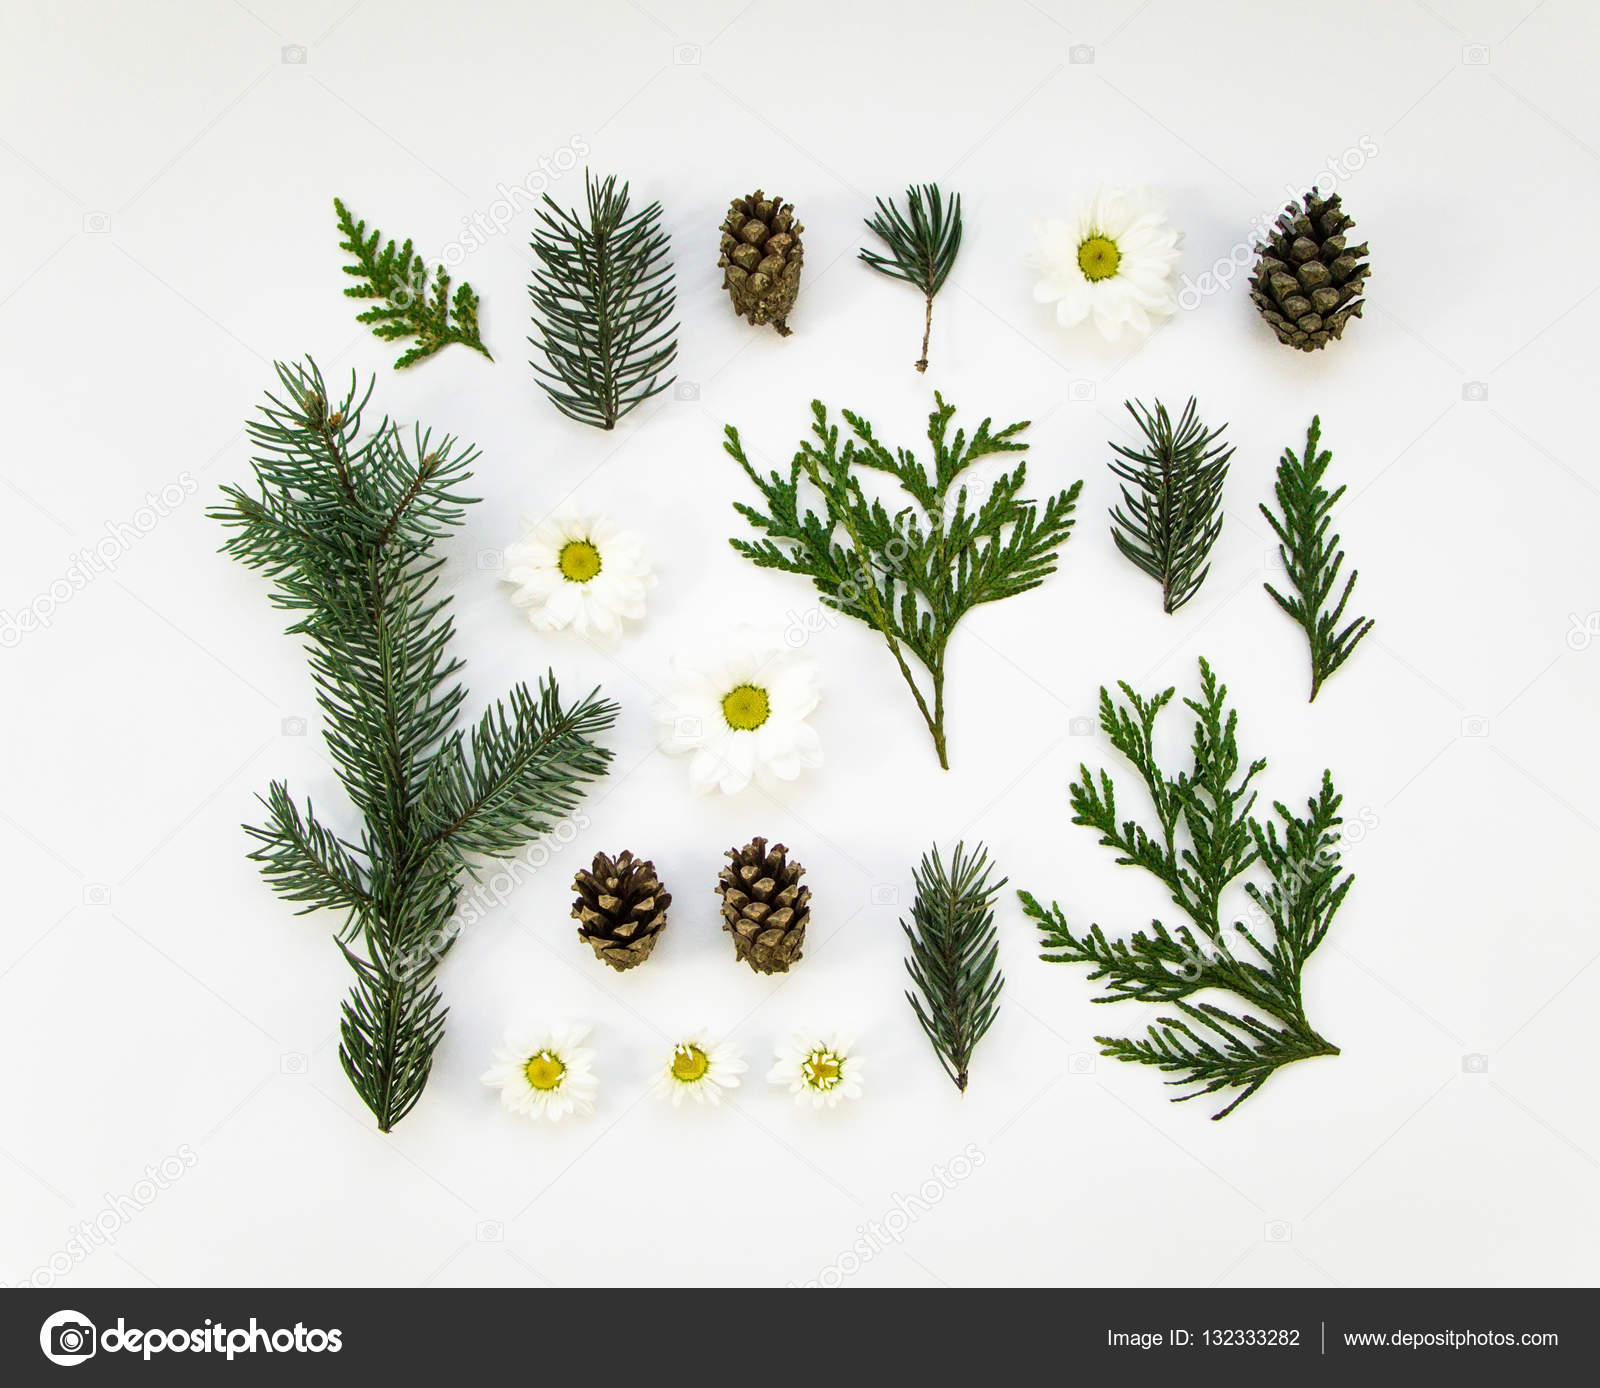 Creative natural layout of winter plants parts on white background creative natural layout of winter plants parts on white background thuja fir tree daisy flower botanic creative set of plants izmirmasajfo Gallery